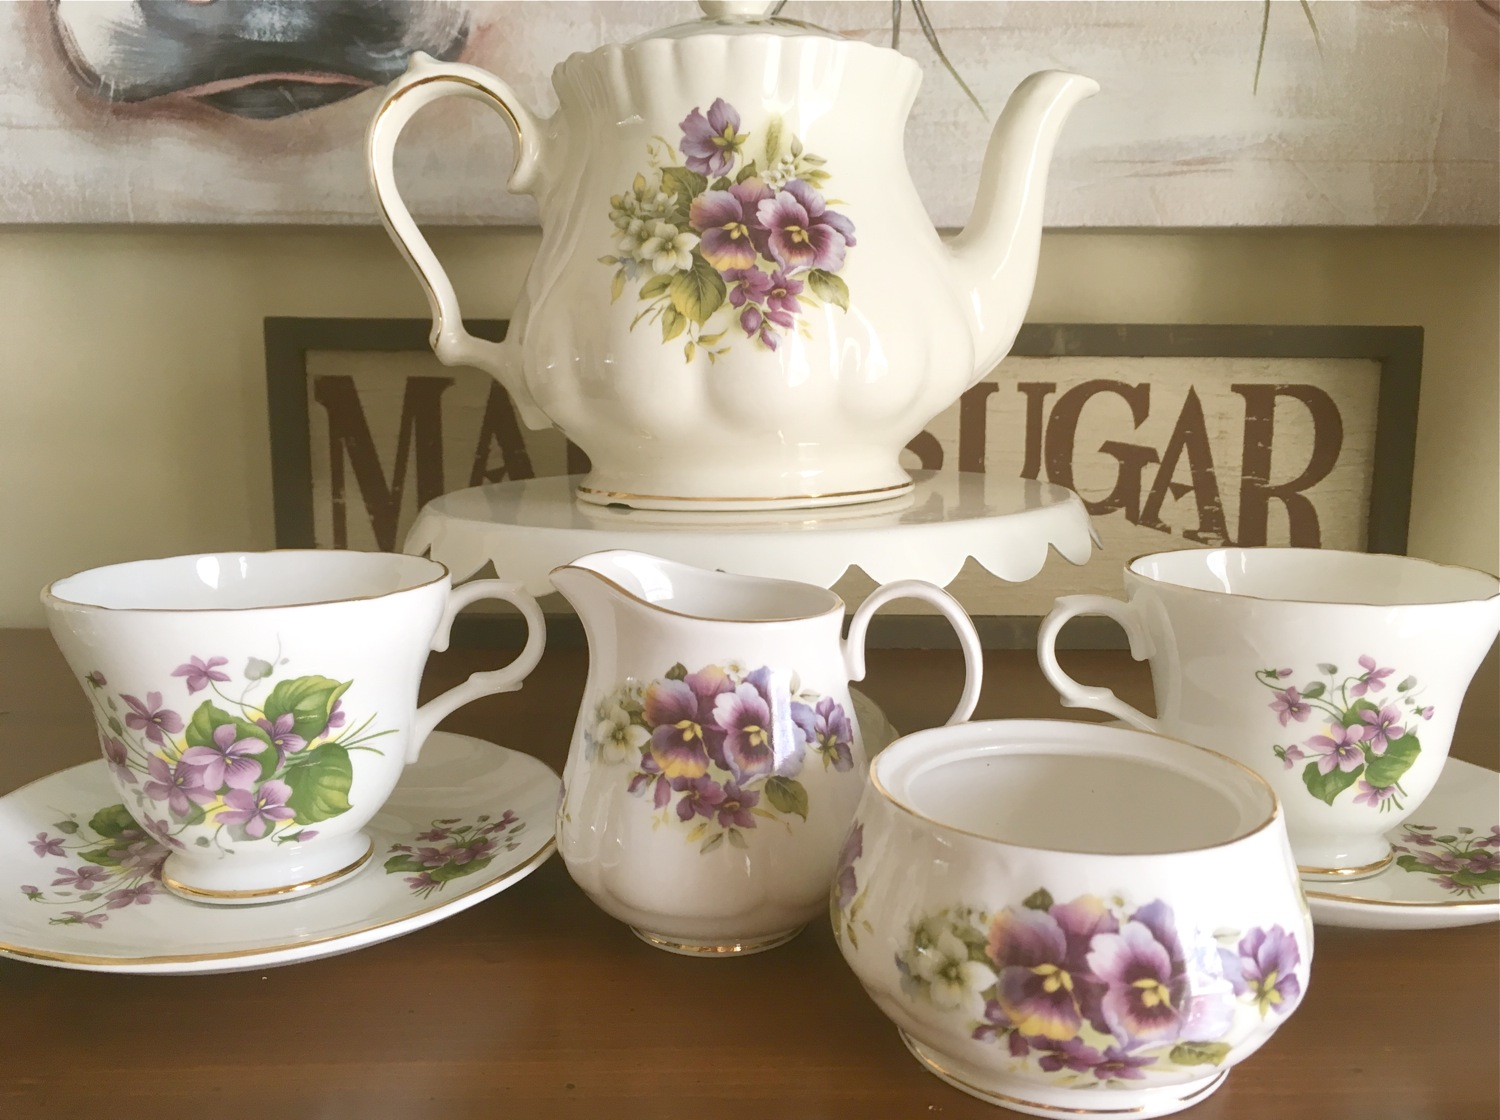 Vintage Tea Treasures, Crown Trent violets teacup, Crown Trent bone china violet teacup and saucer set, Crown Trent tea ware, bone china teaware, Windsor pansy teapot, Windsor bone china pansy teapot,  Allyn Nelson pansy milk jug, Allyn Nelson pansy sugar bowl, Allyn Nelson bone china pansy milk jug and sugar bowl, mix and match tea set, violets and pansies tea set, vintage tea set